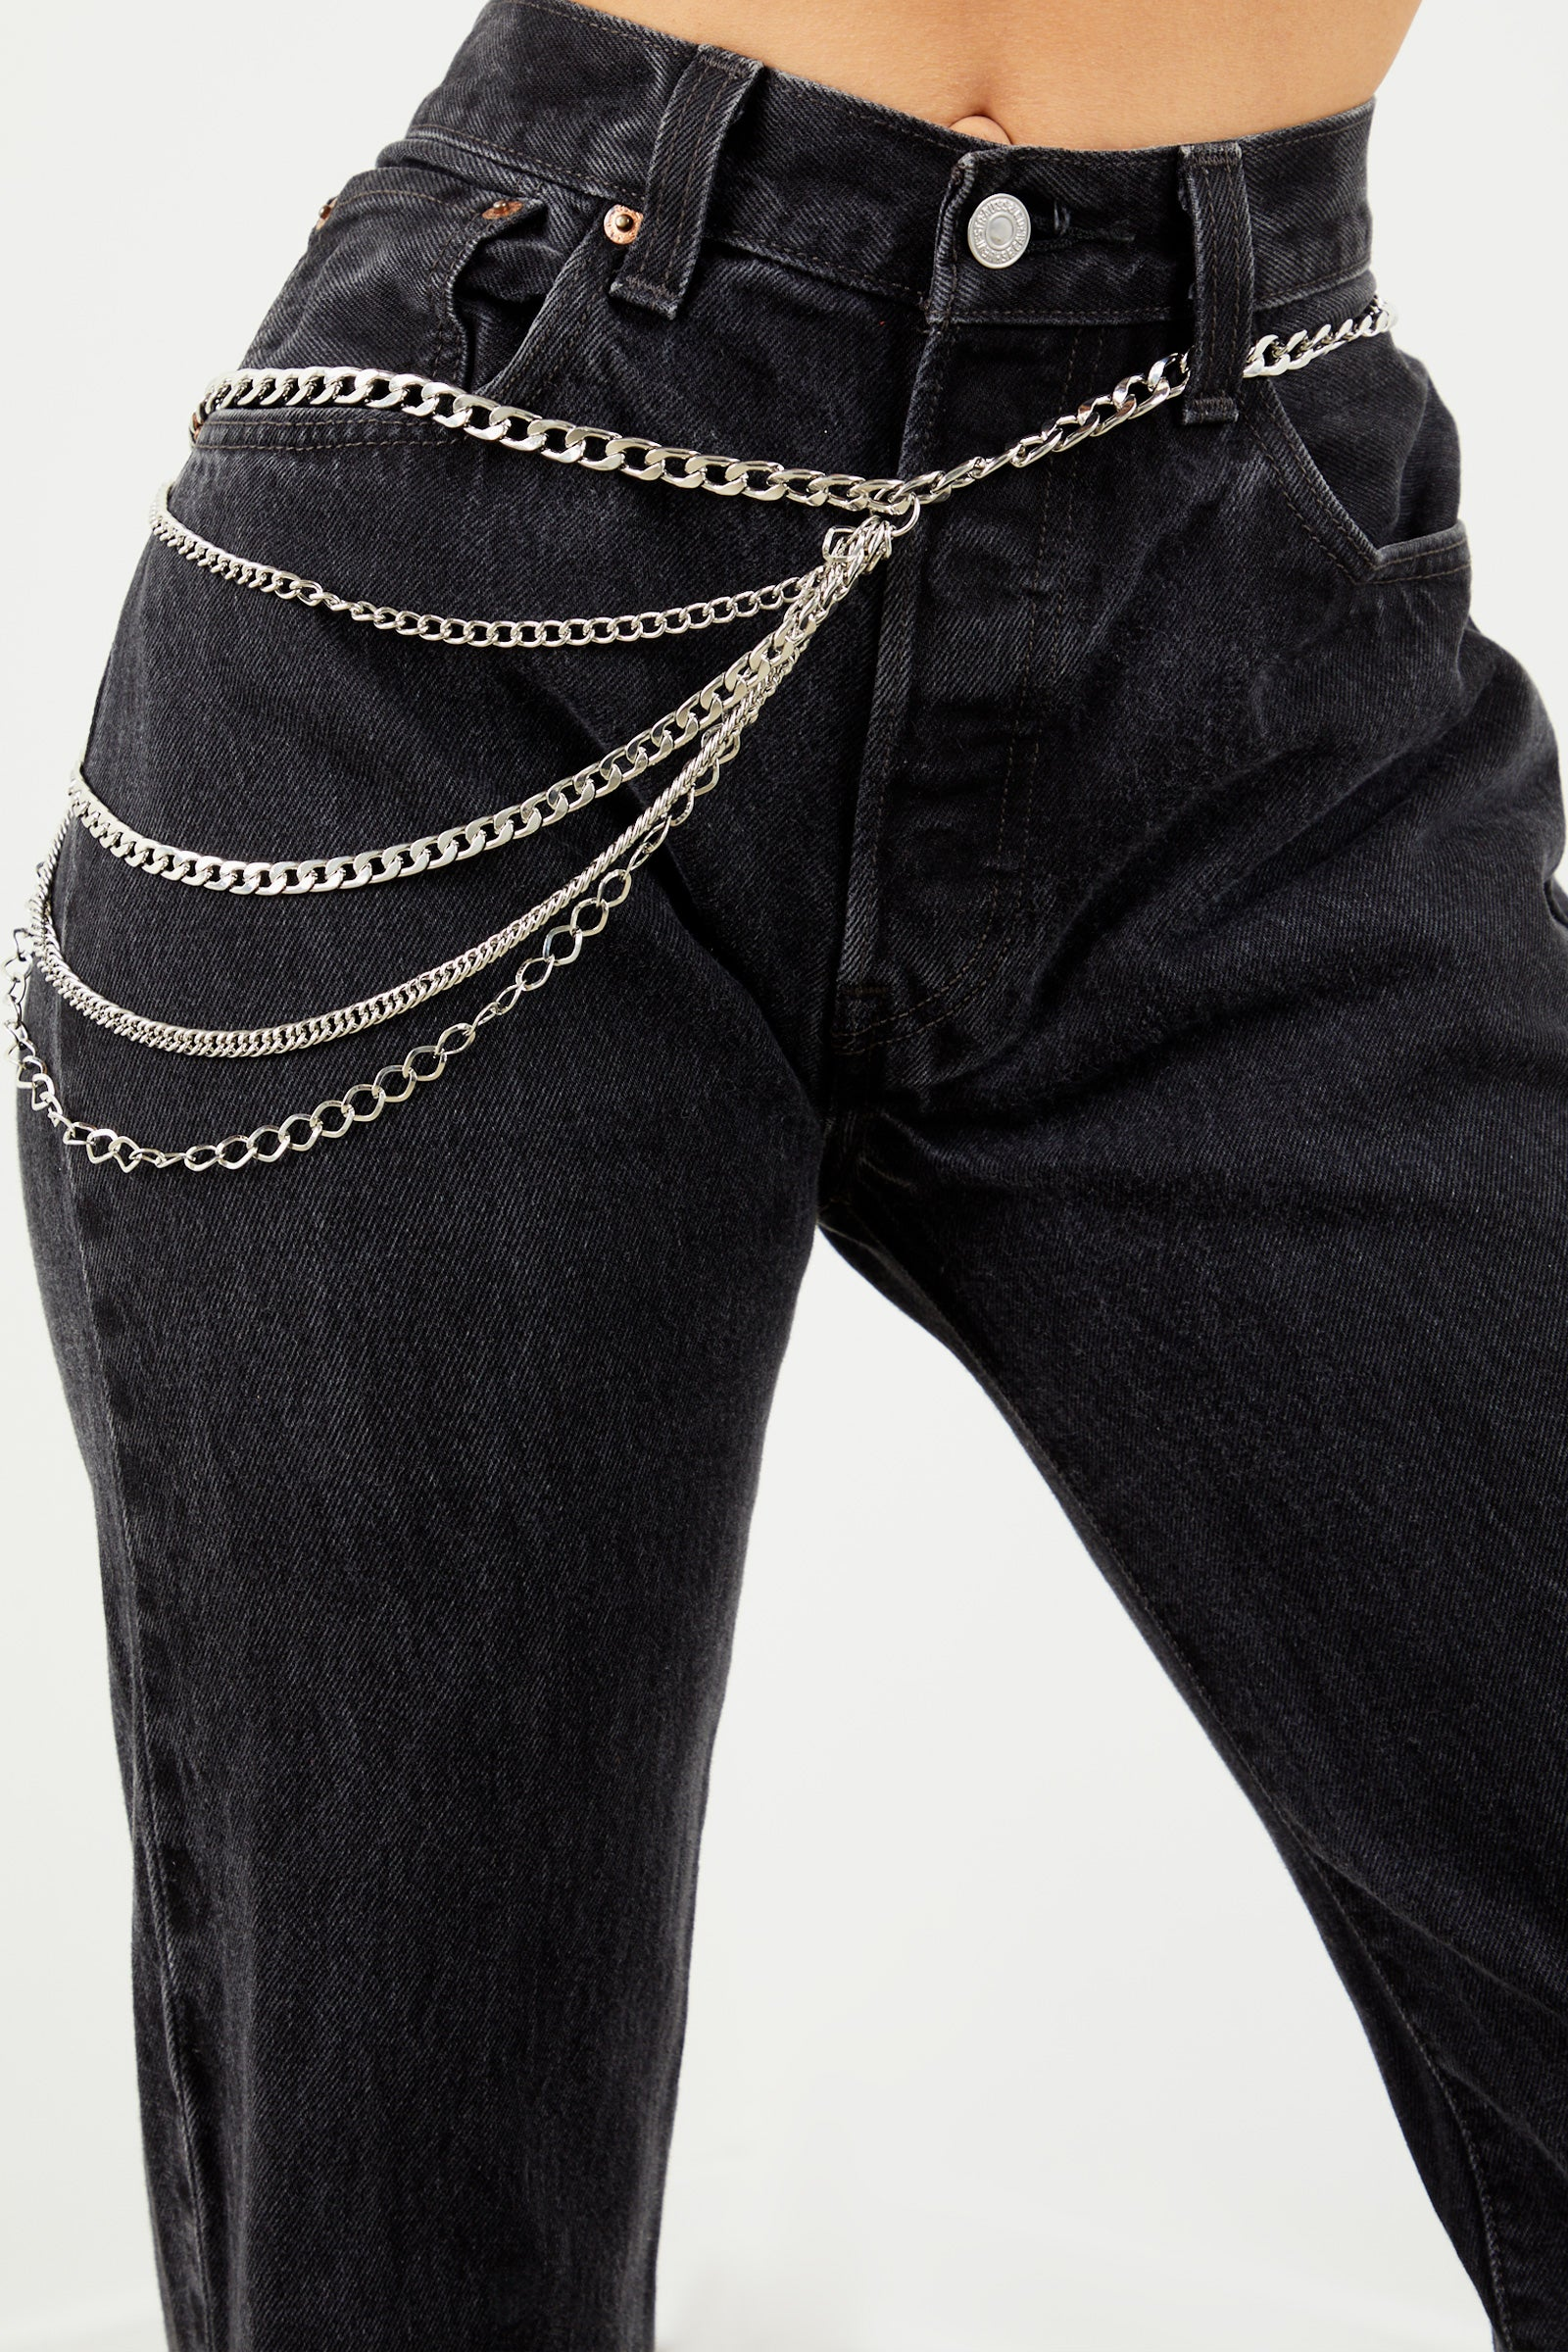 Layering Chain Belt - Silver